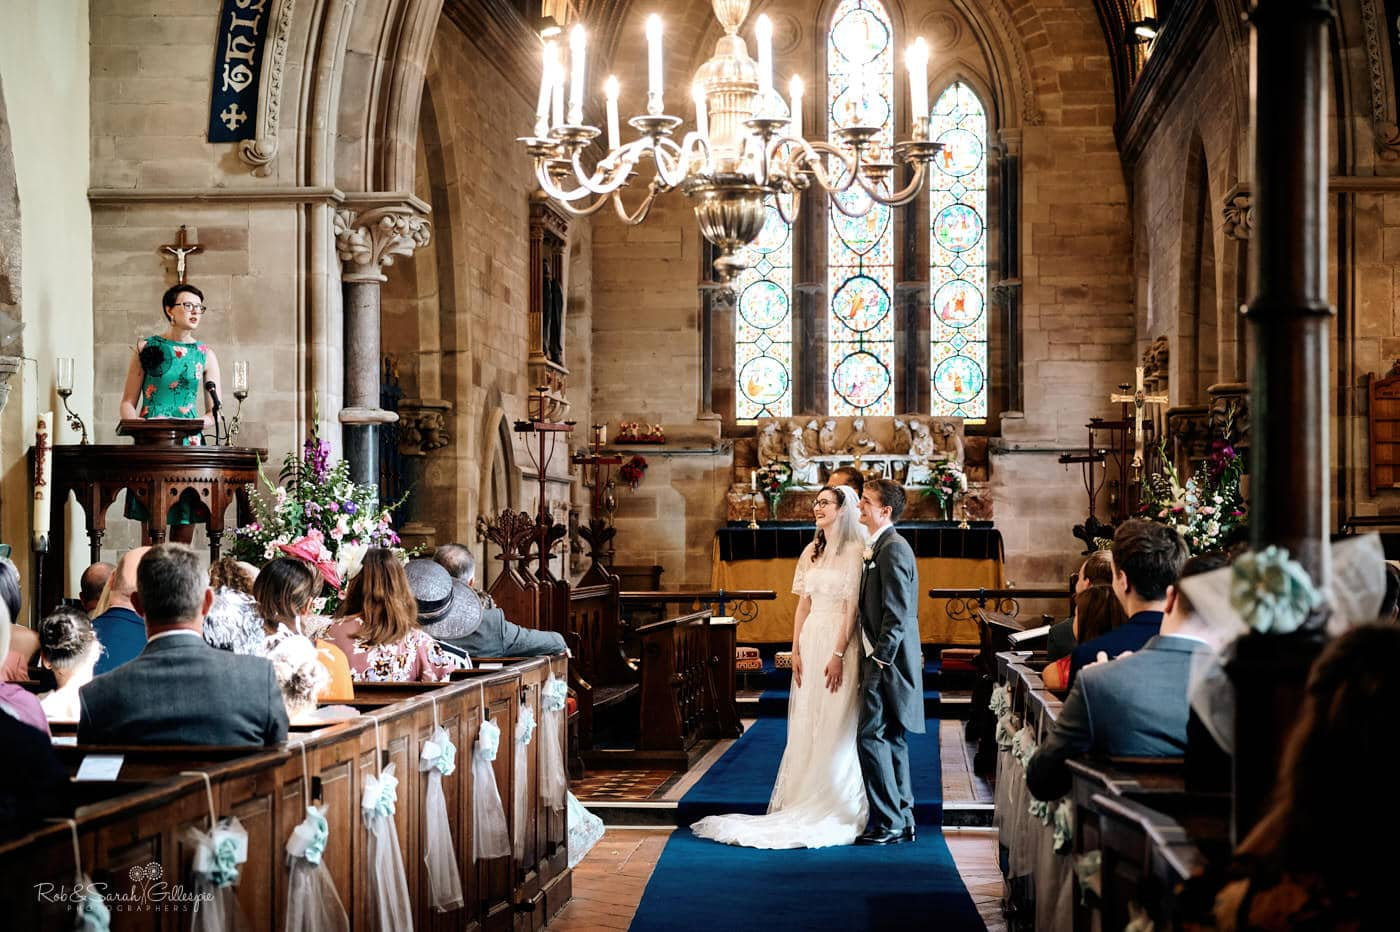 Bride and groom listen to guest reading during church wedding